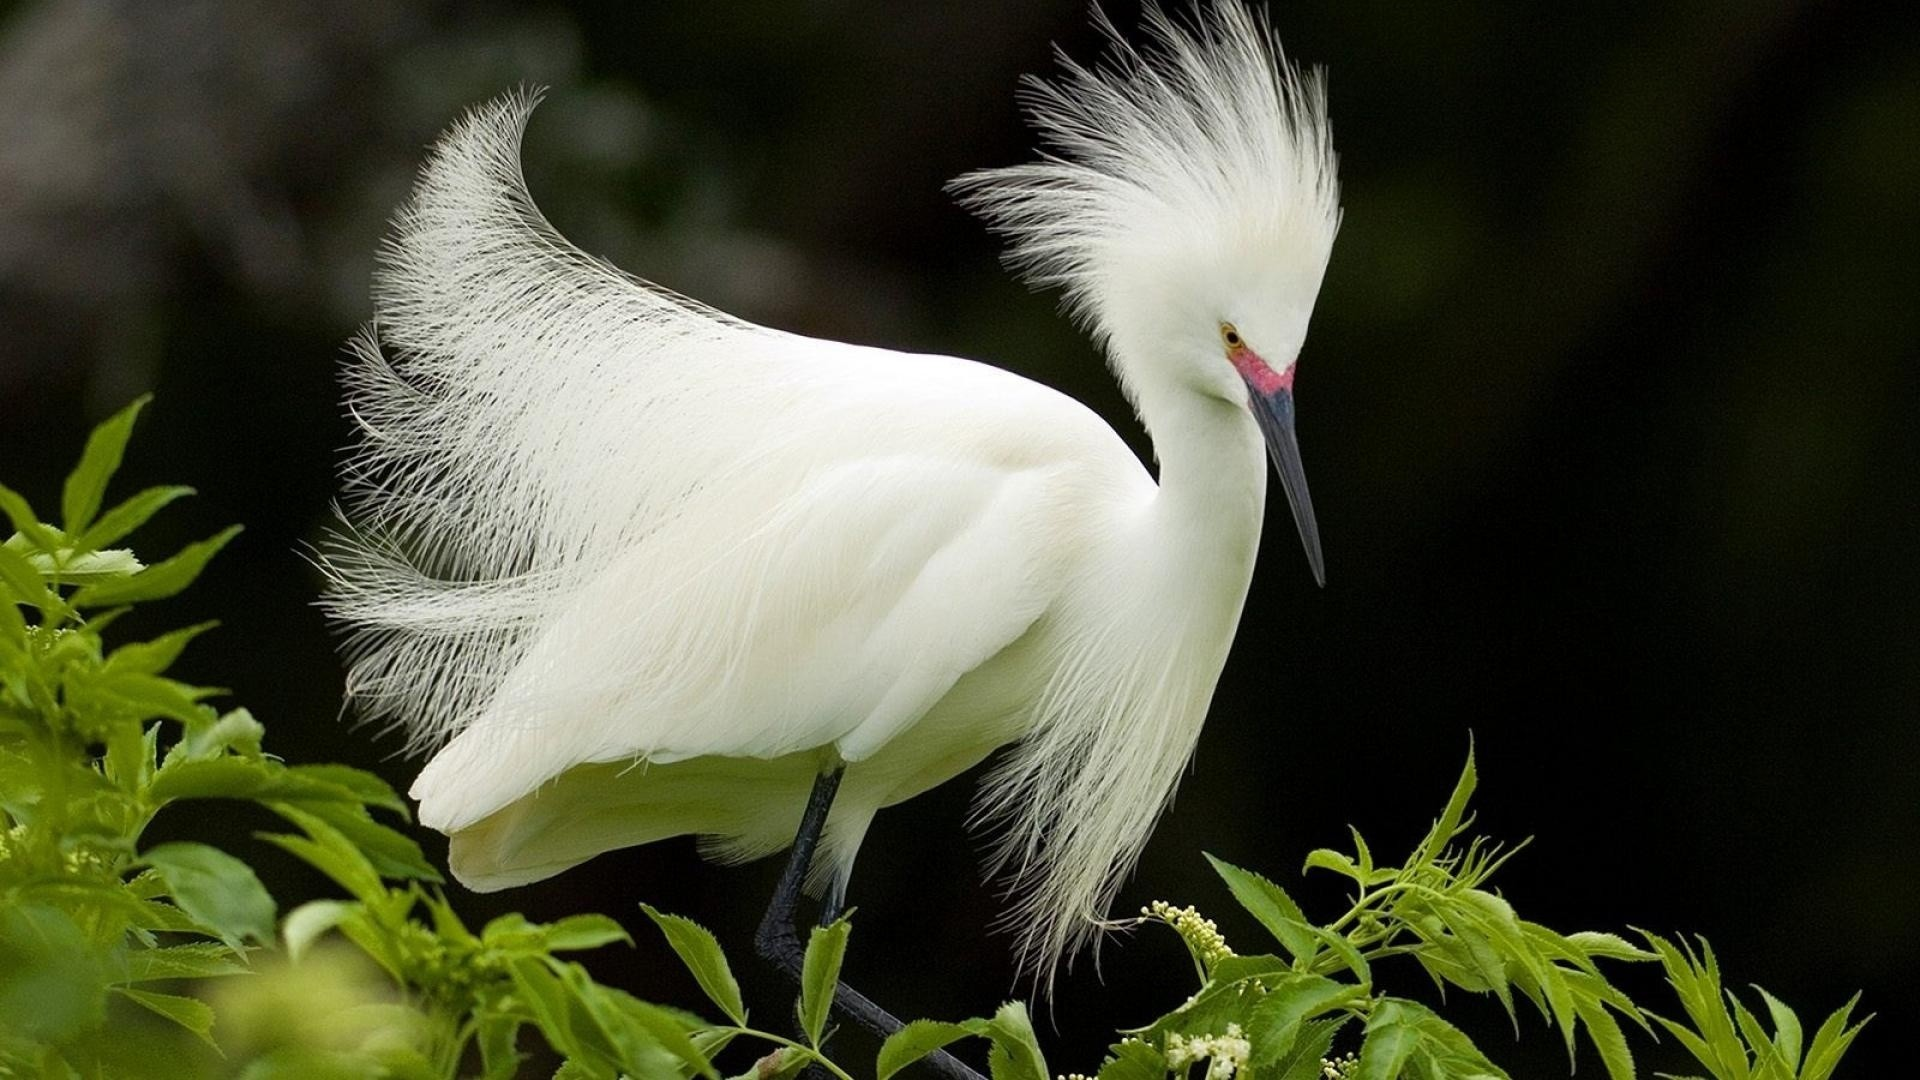 Res: 1920x1080, White African Heron